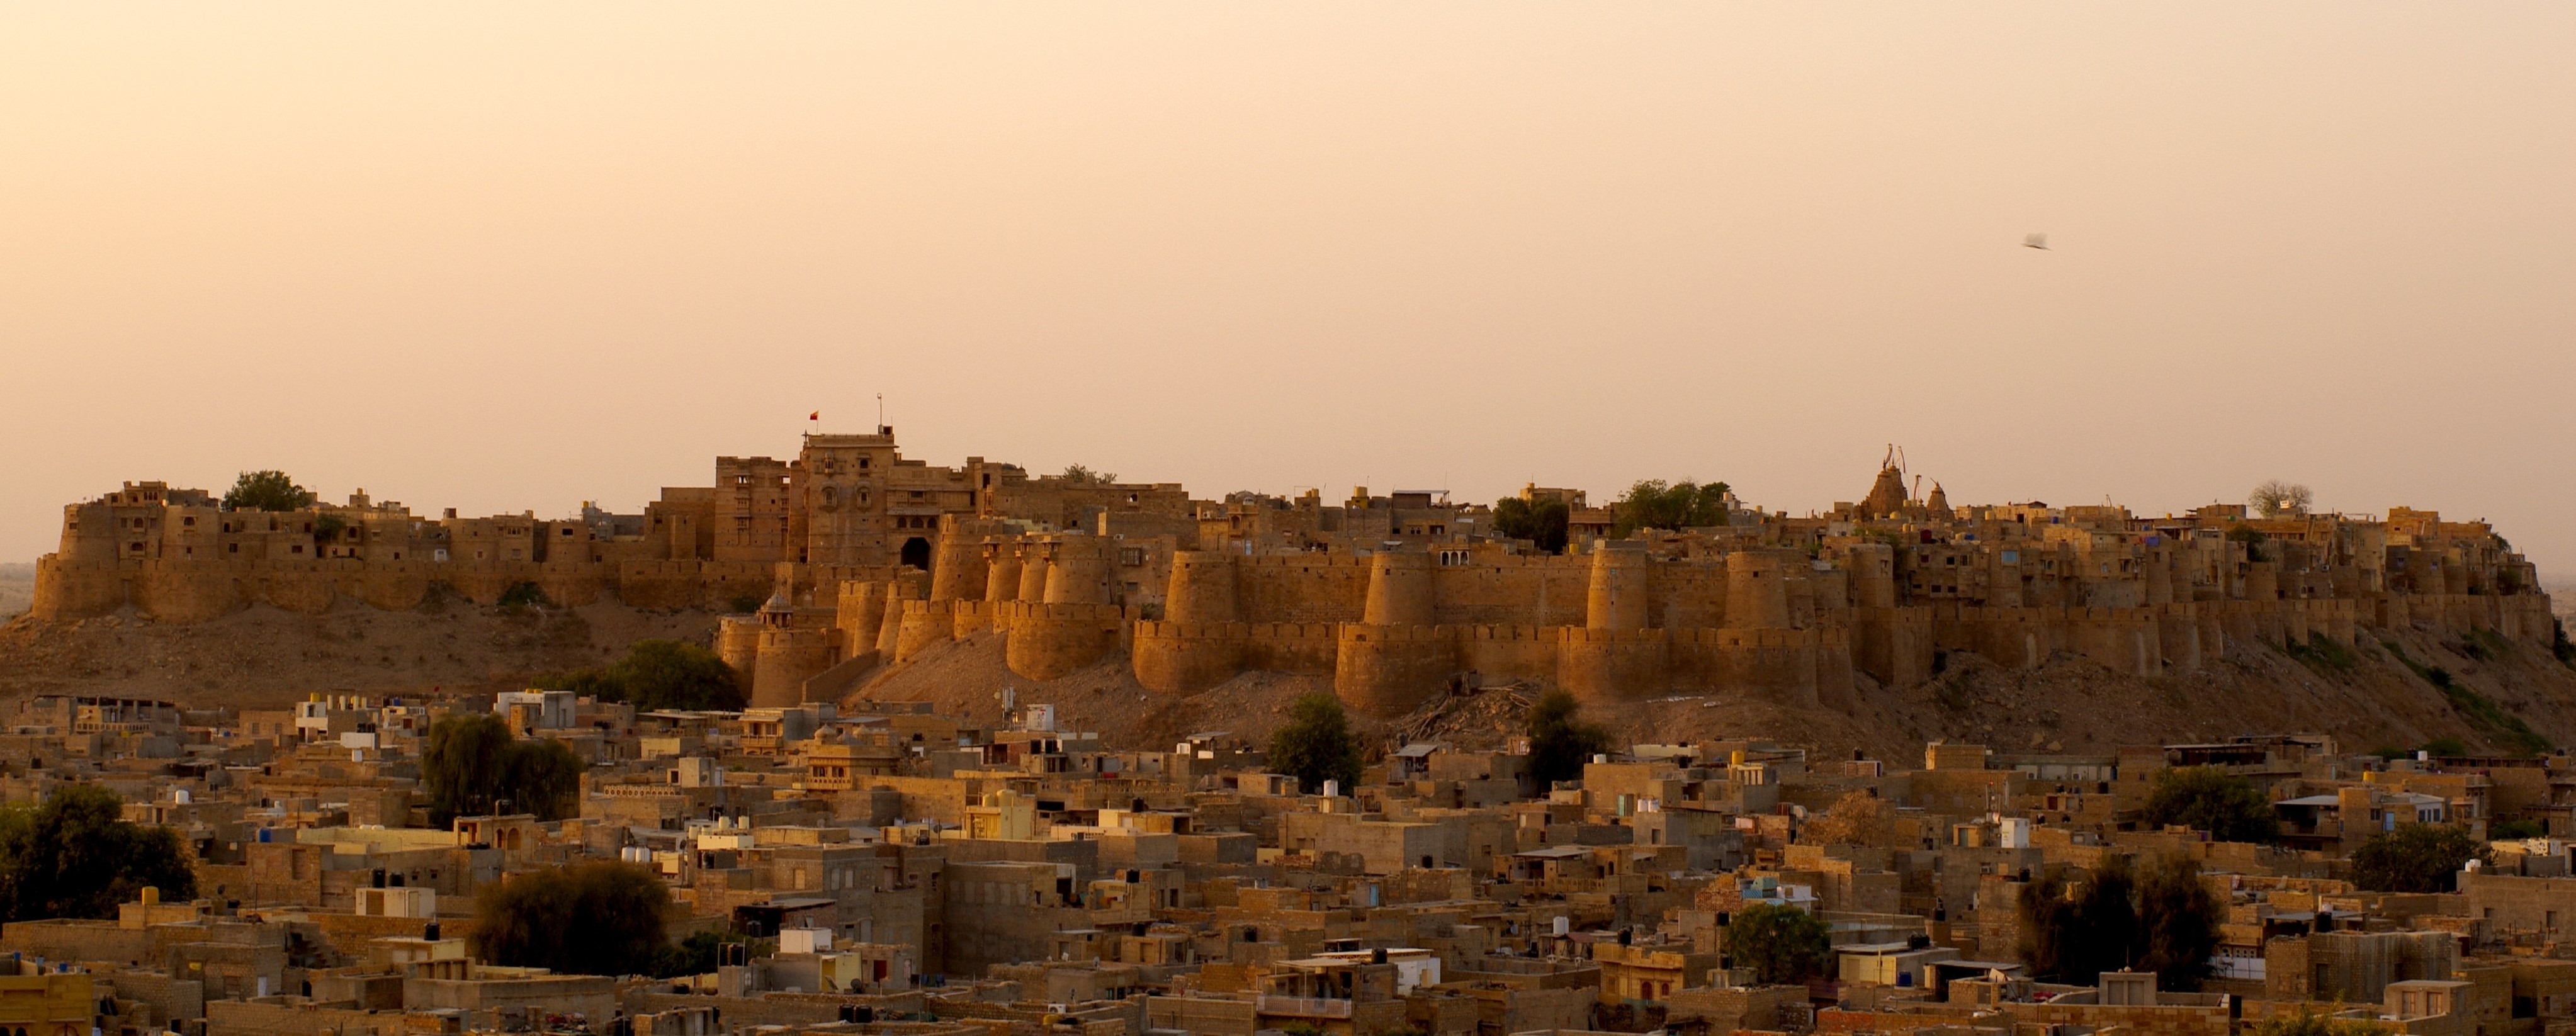 jaisalmer_fort_sonar_qila_or_golden_fort_viewed_from_the_north_at_sunrise